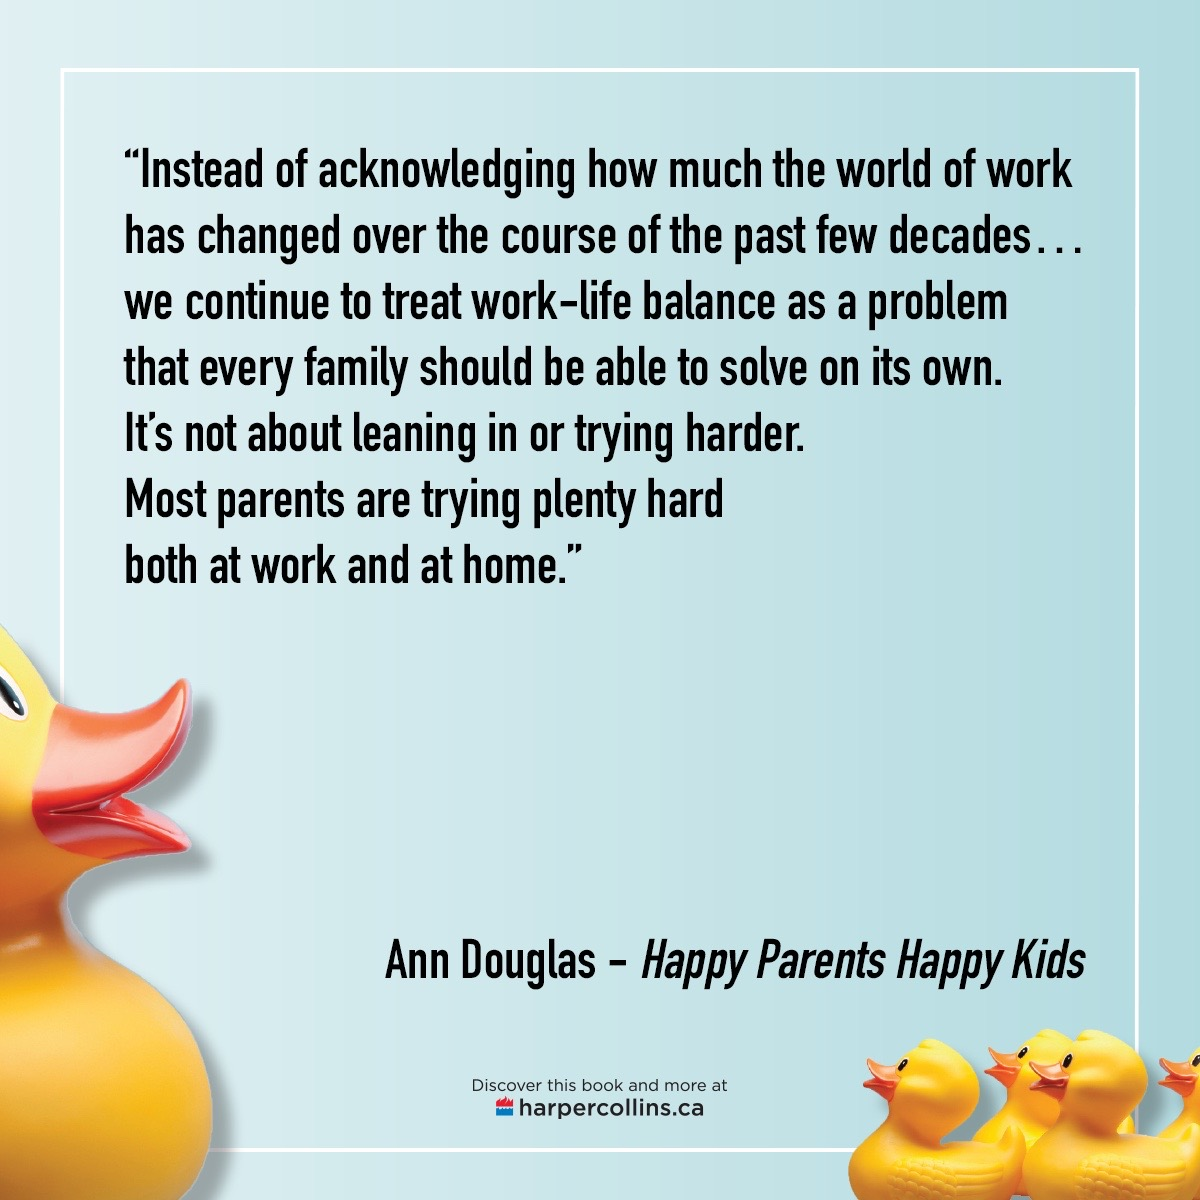 ann douglas - happy parents happy kids.jpg